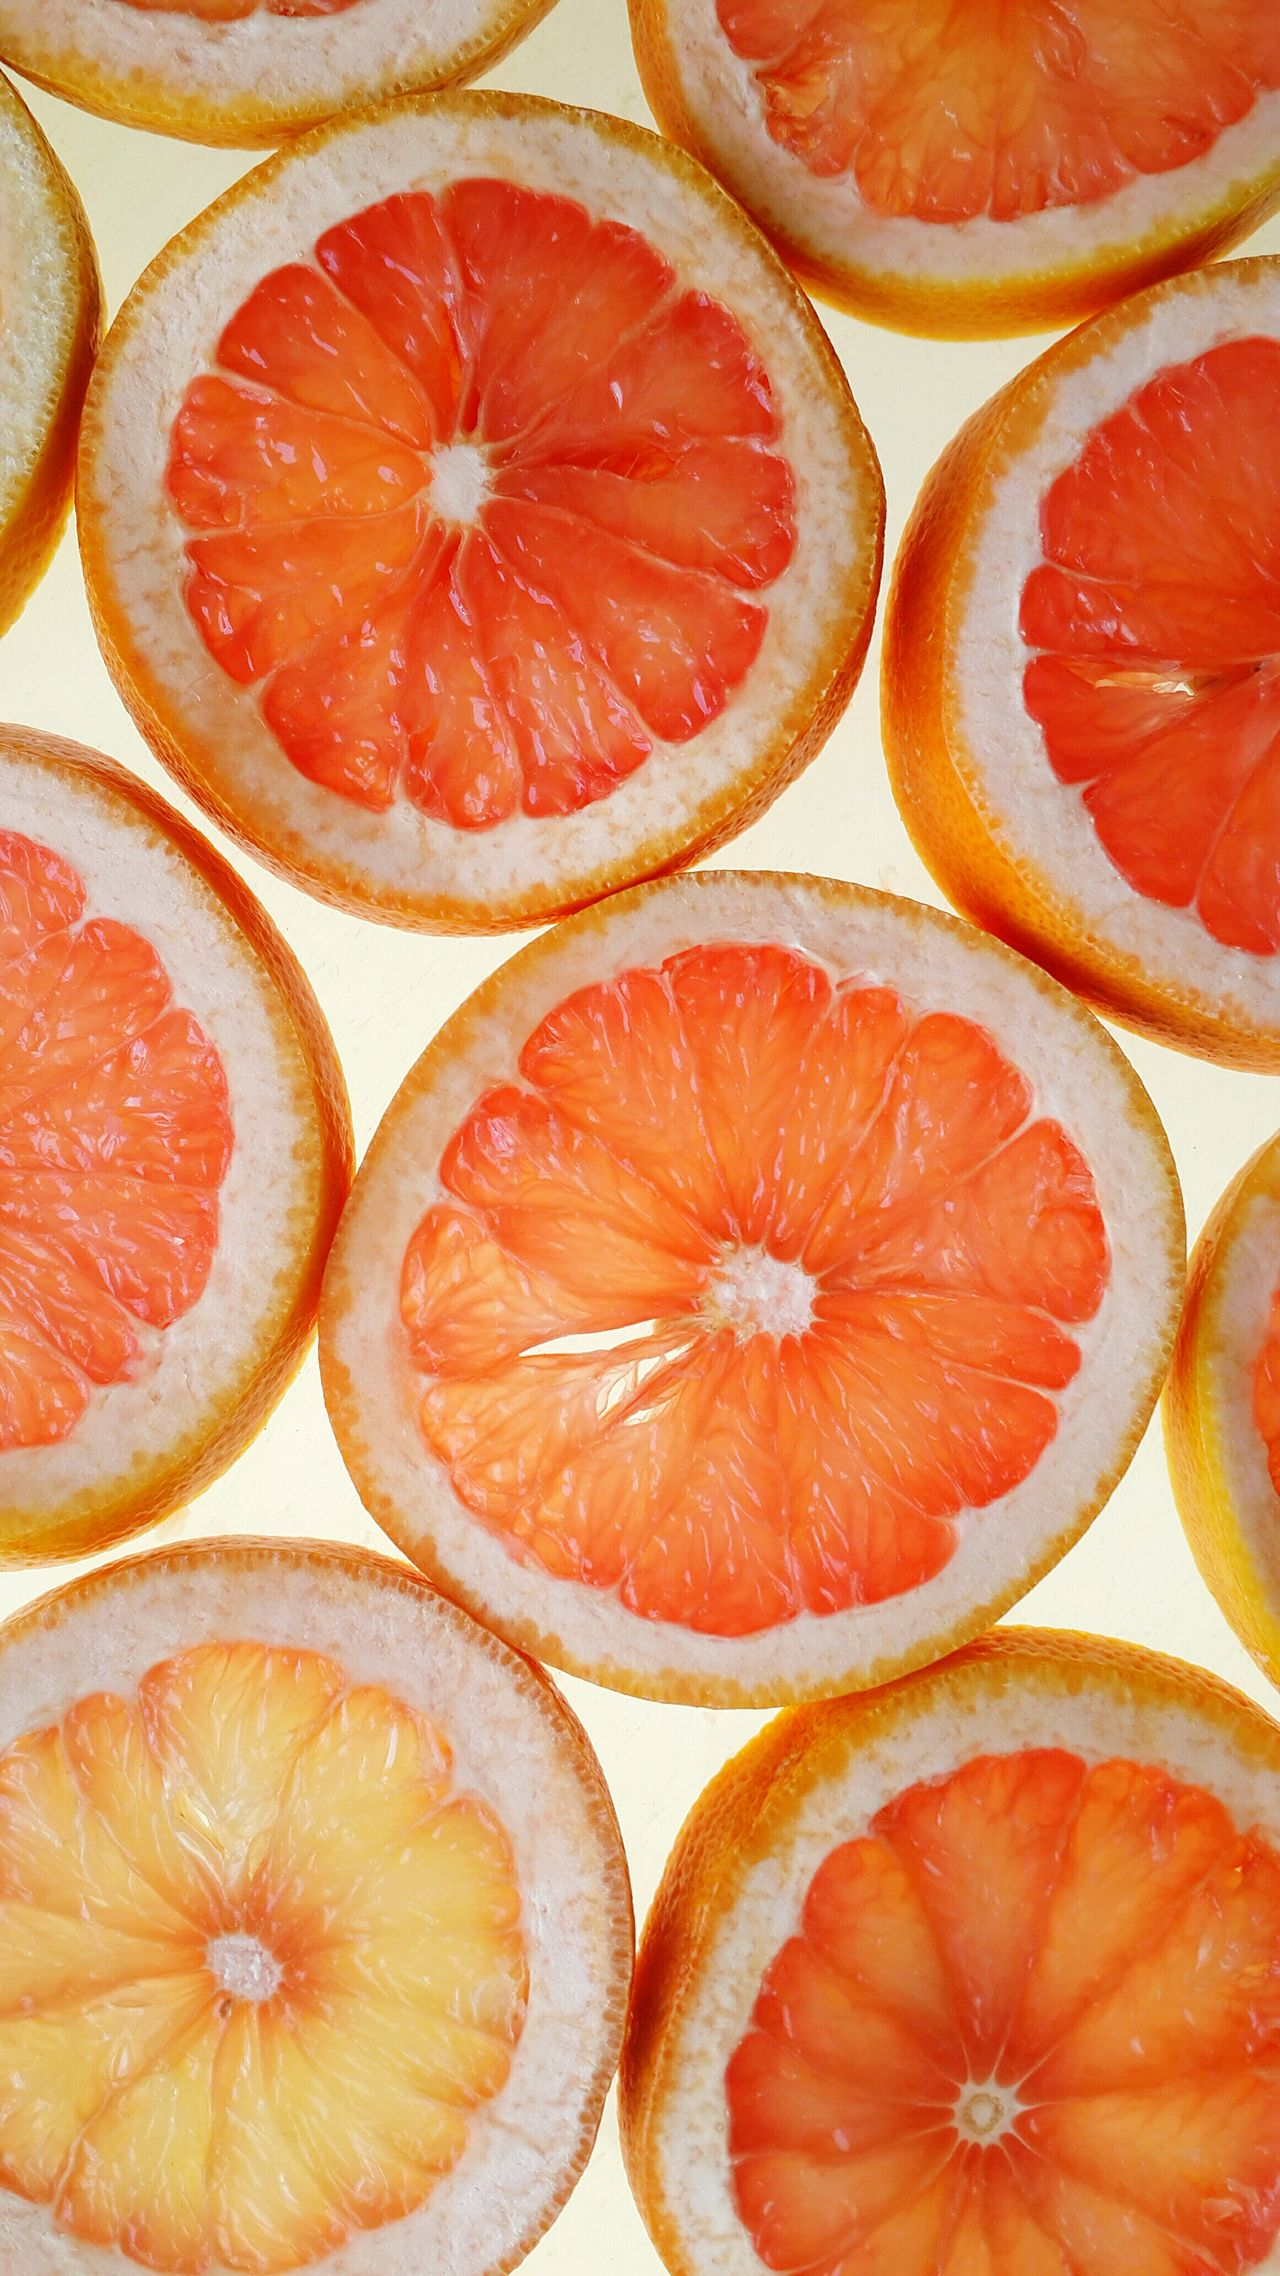 Full Frame Fruit SLICE Healthy Eating Citrus Fruit Cross Section Grapefruit Freshness High Angle View Pattern Backgrounds Circles Natural Pattern Pattern Pieces Blood Orange Sour Taste Food White Background Background Slices Healthy Food Citrus  Close-up Geometric Shapes Symmetry